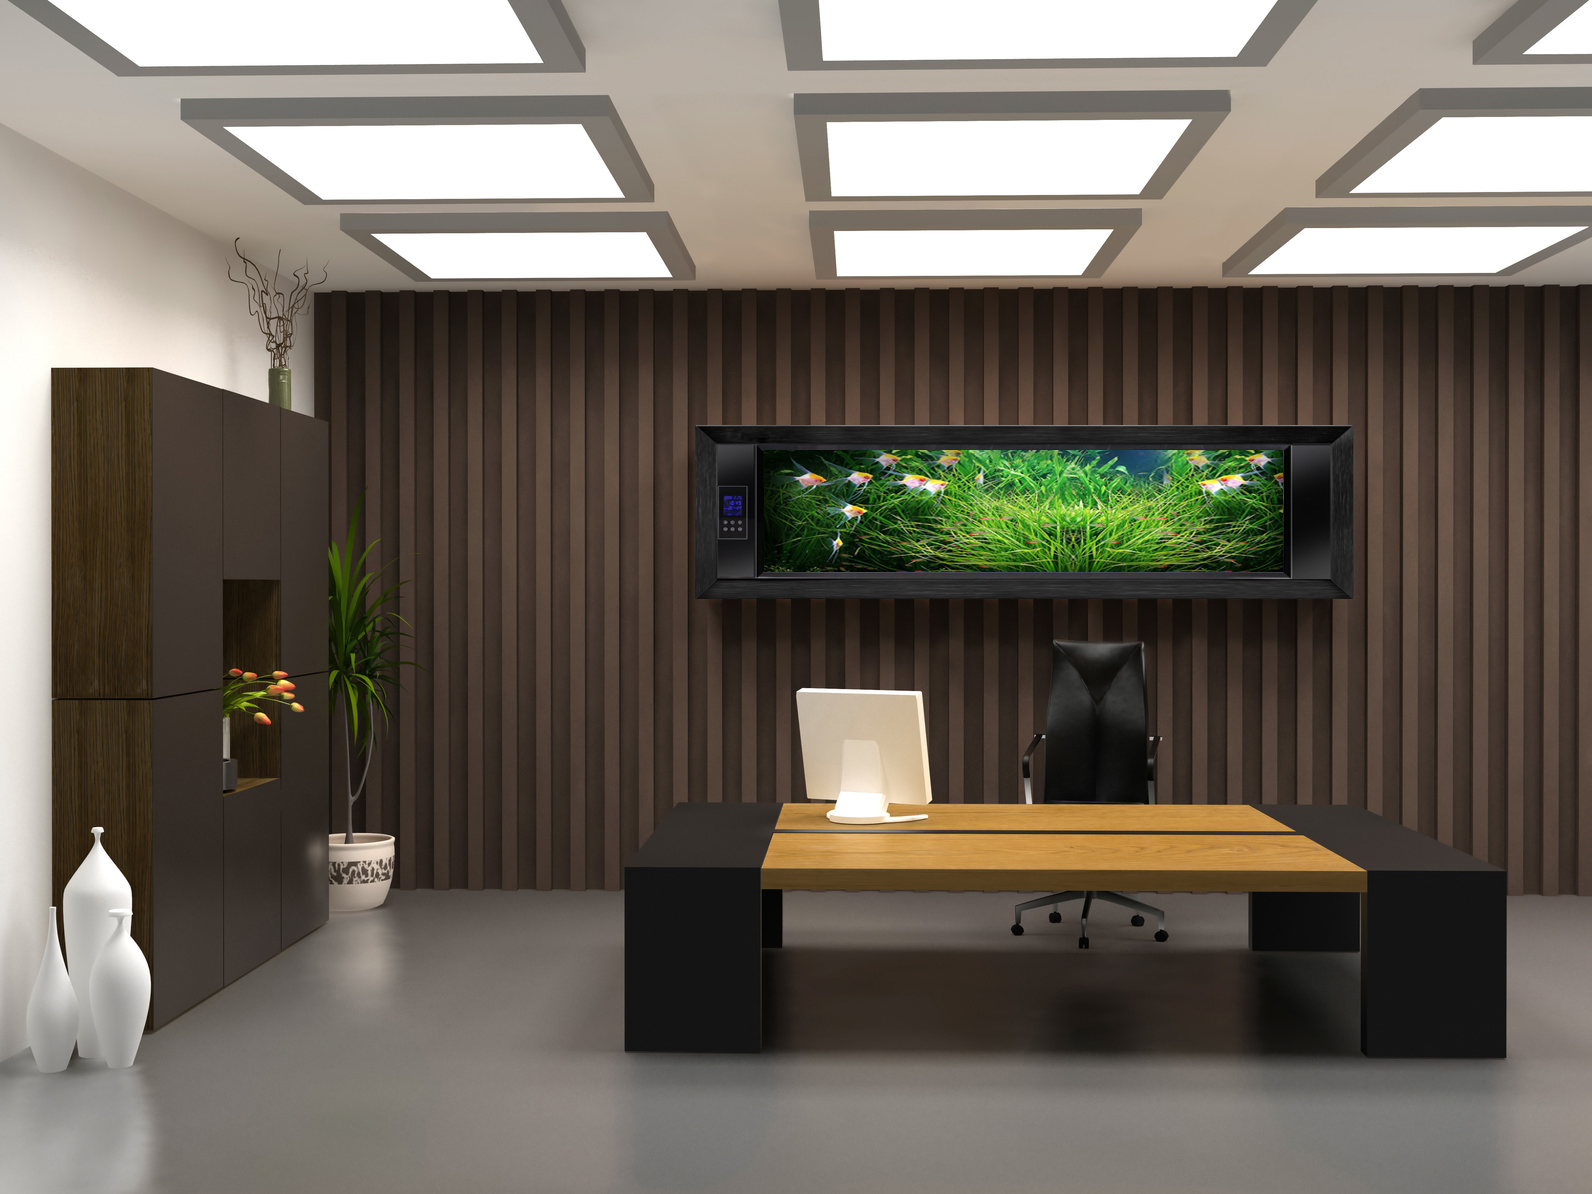 Elegant ceo office design bellisima for House office design